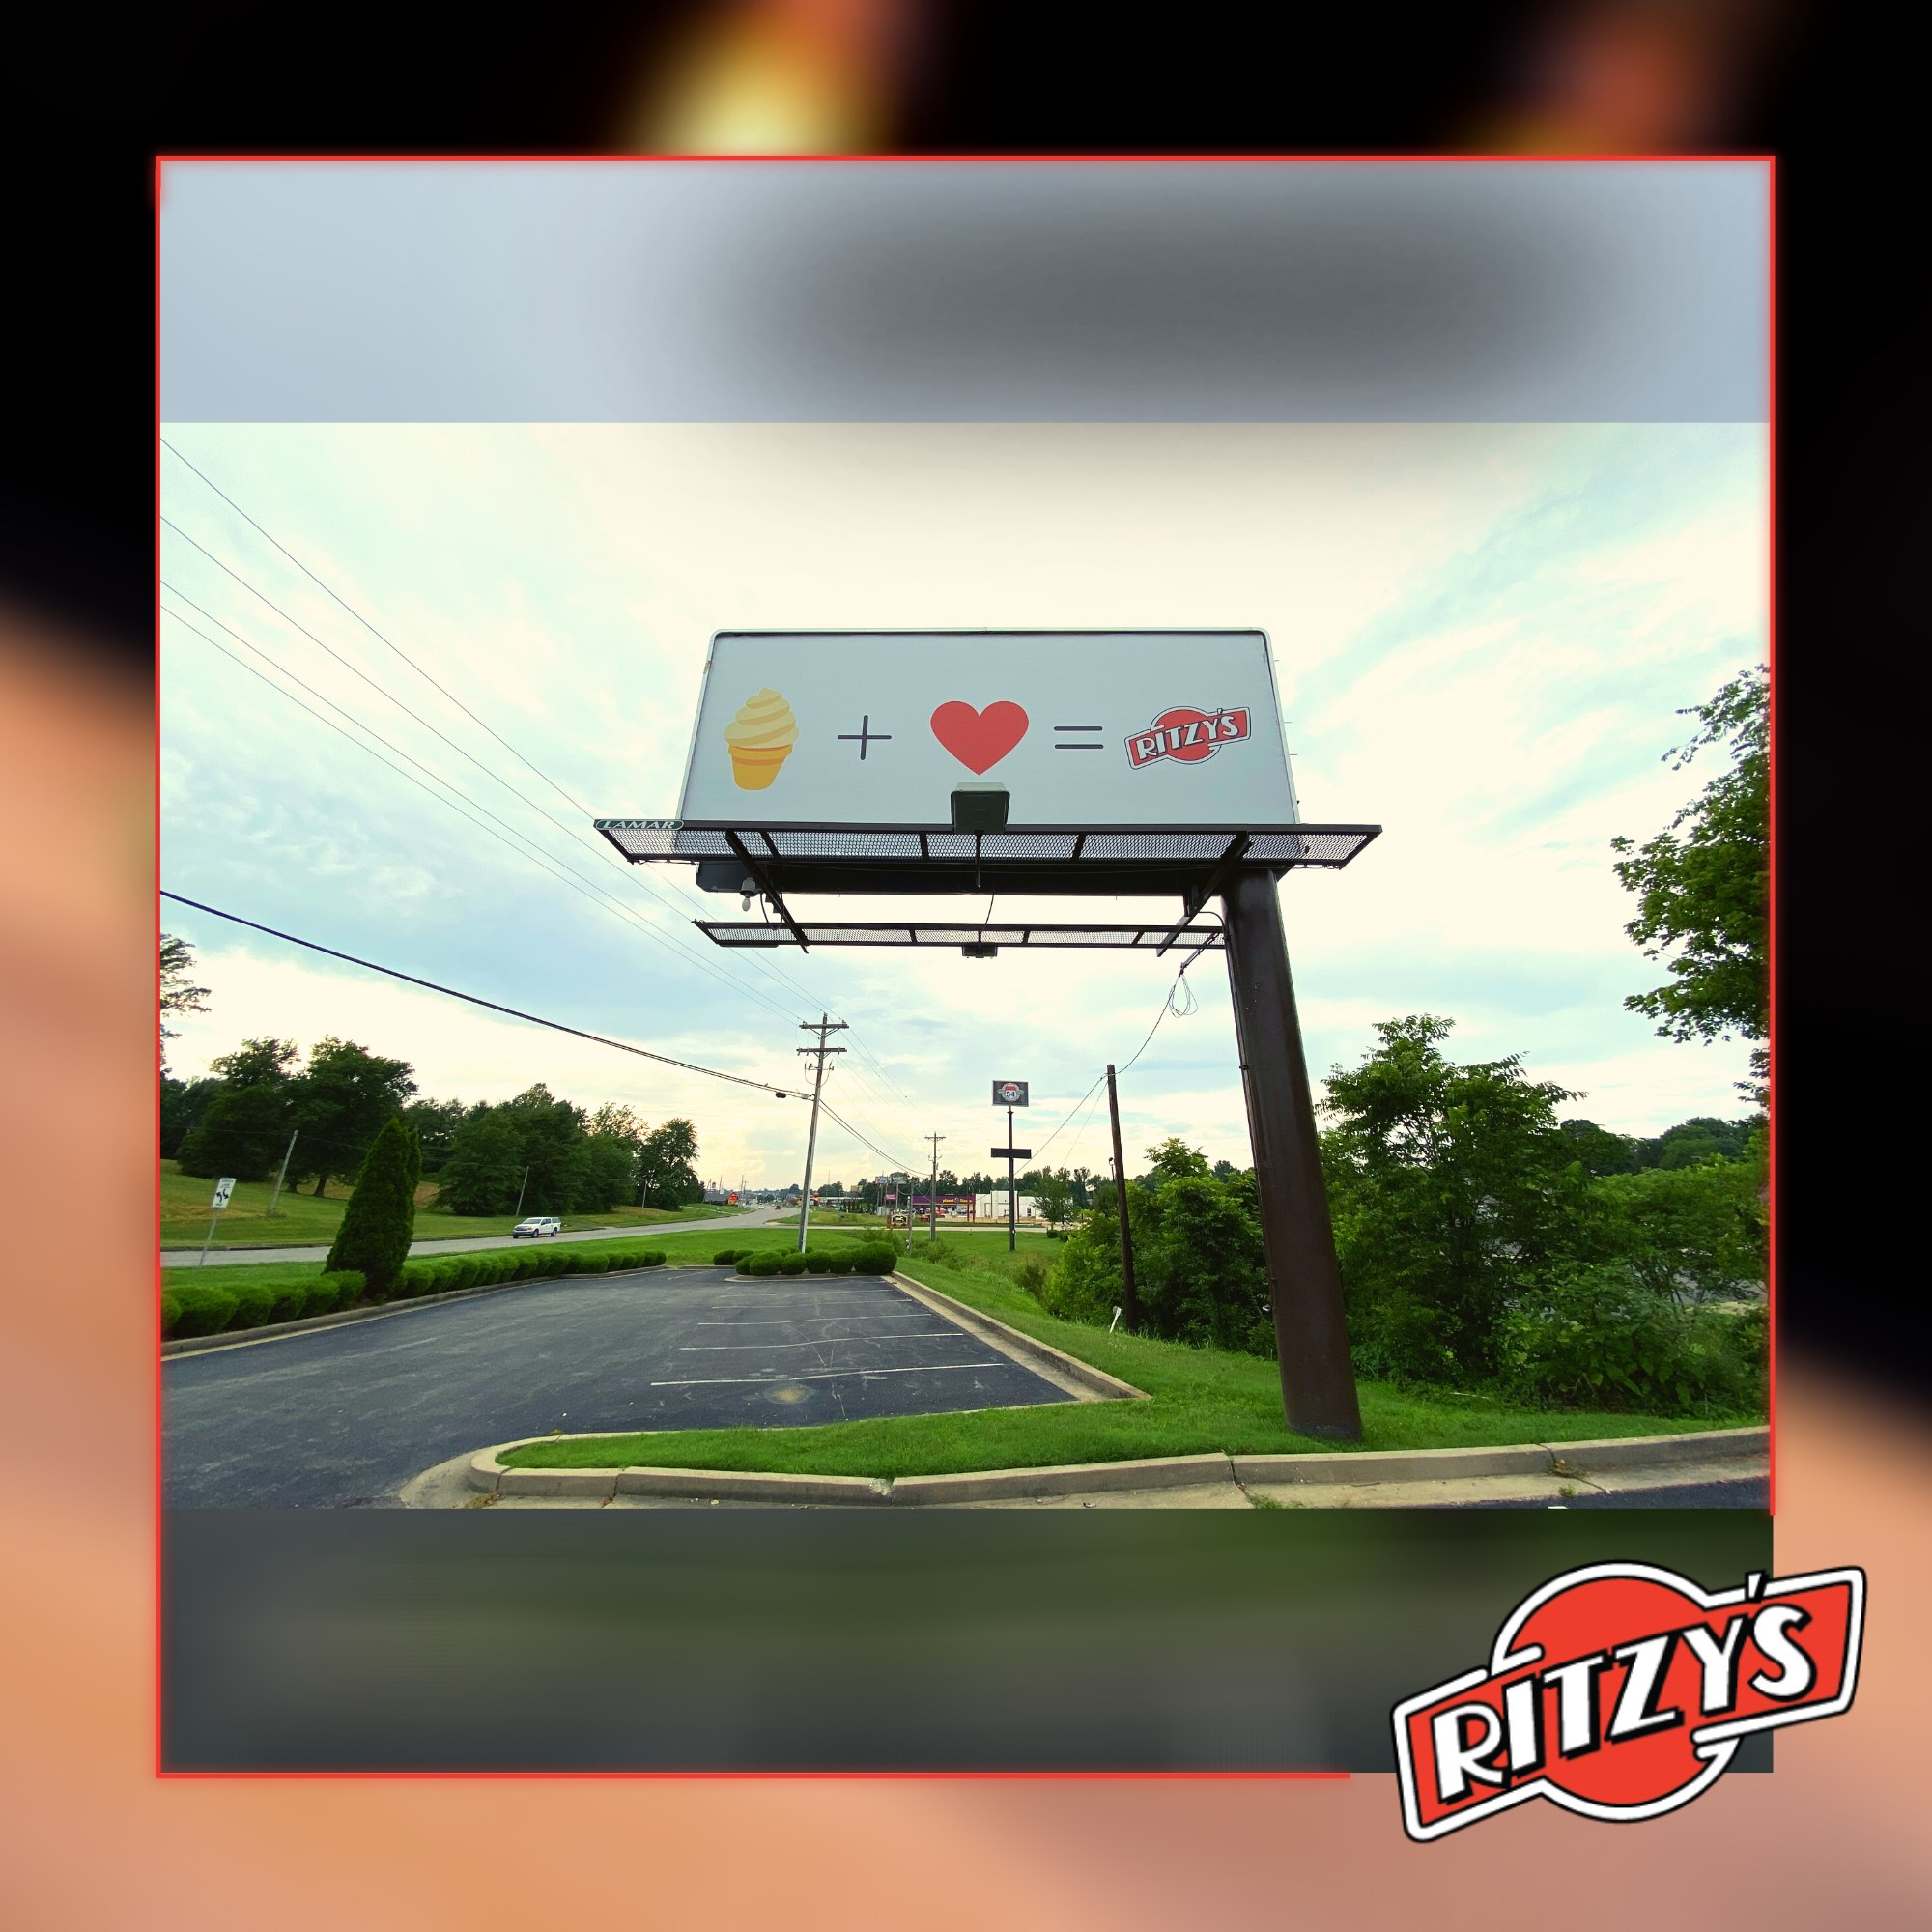 Ritzy's billboard that depicts the emojis: ice cream + heart = Ritzy's